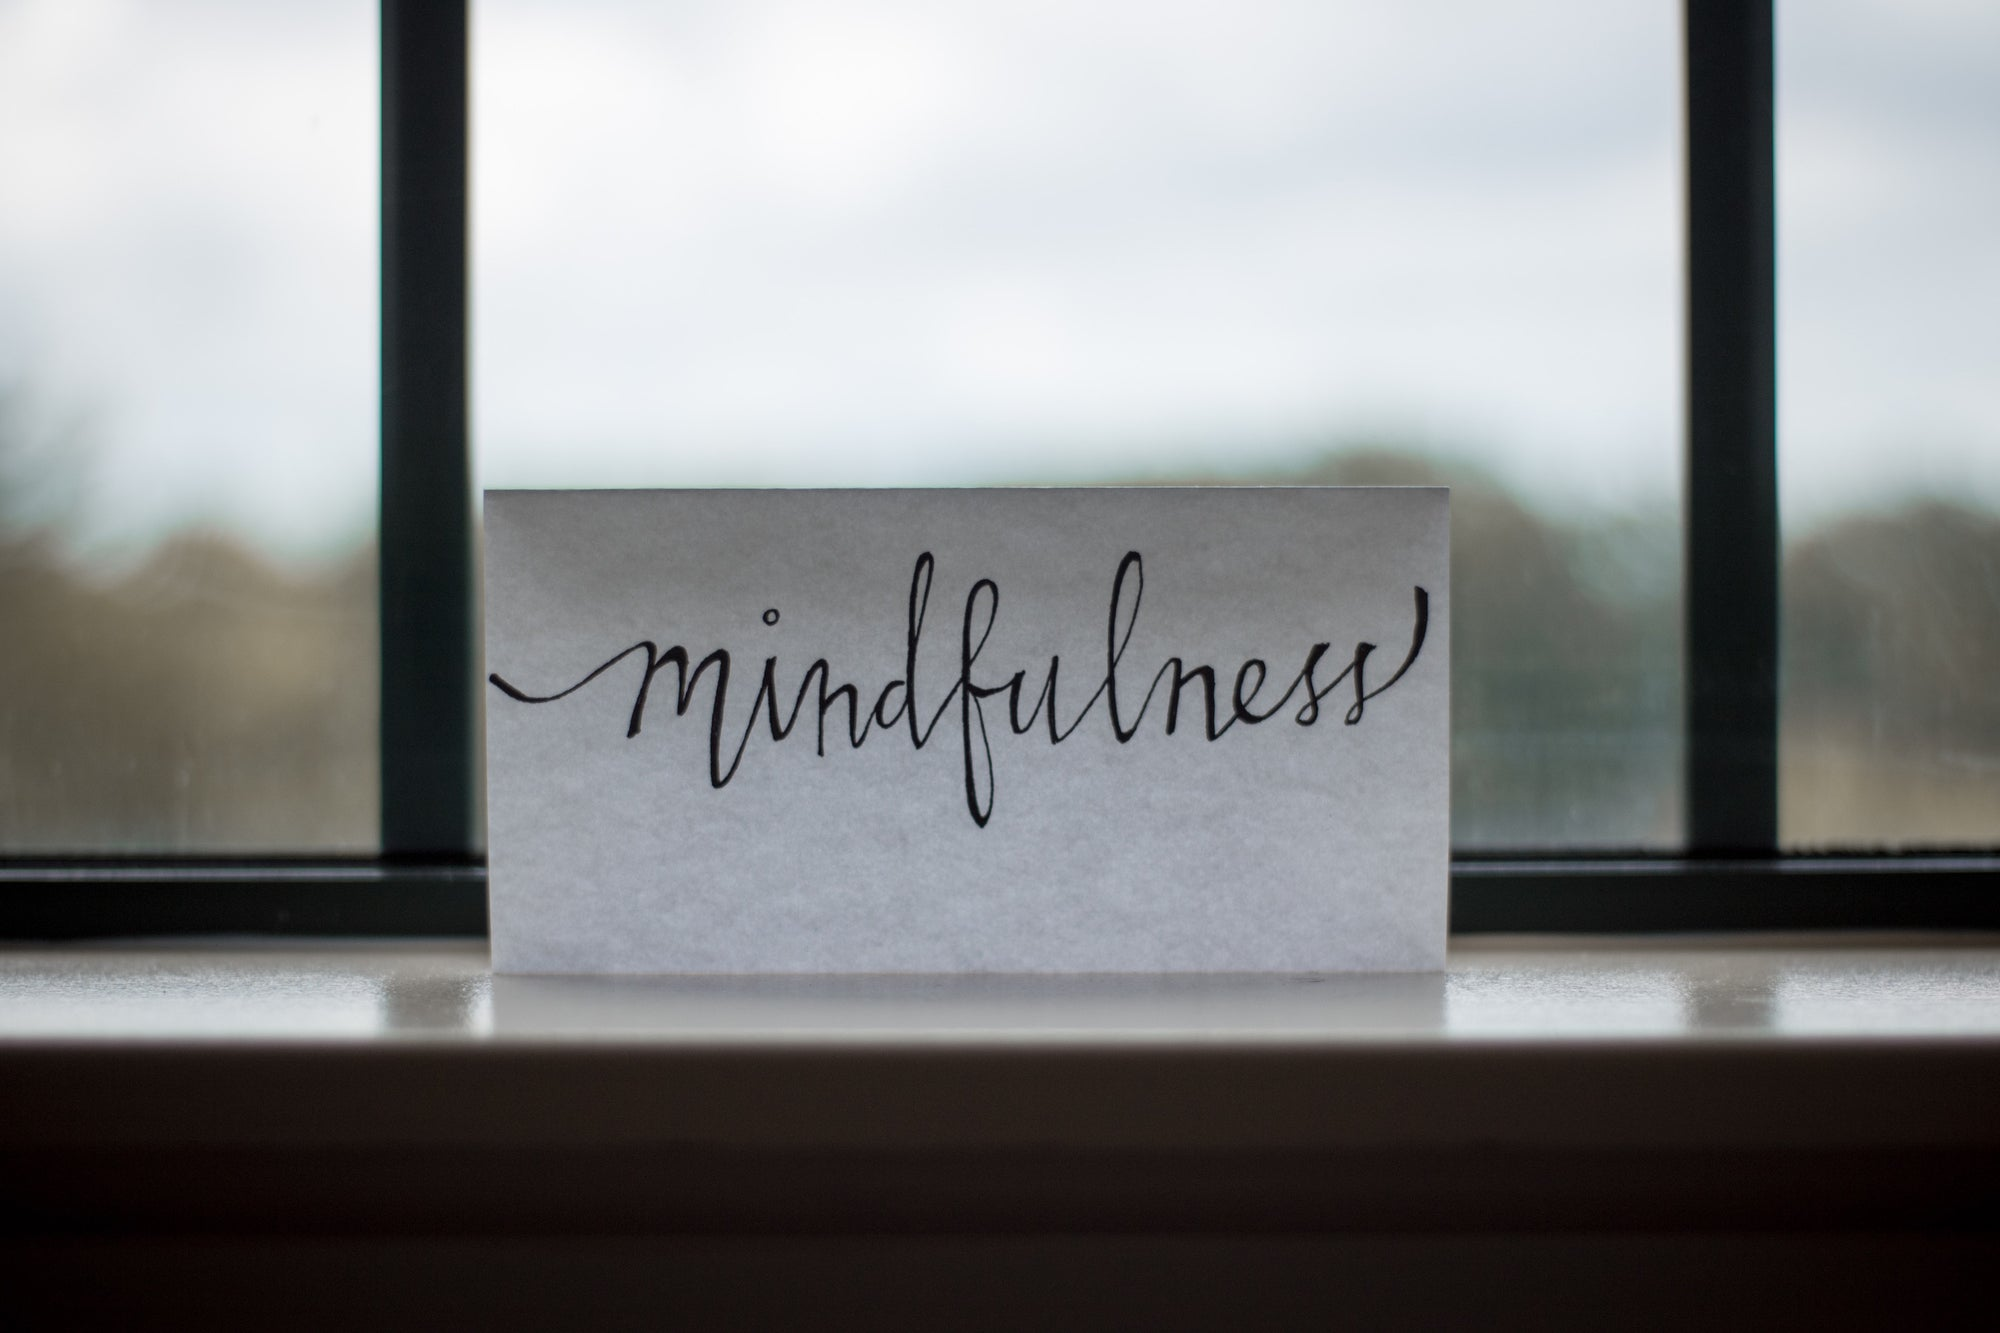 Mindfulness - How a Positive Mindset Can Fundamentally Improve Your Life